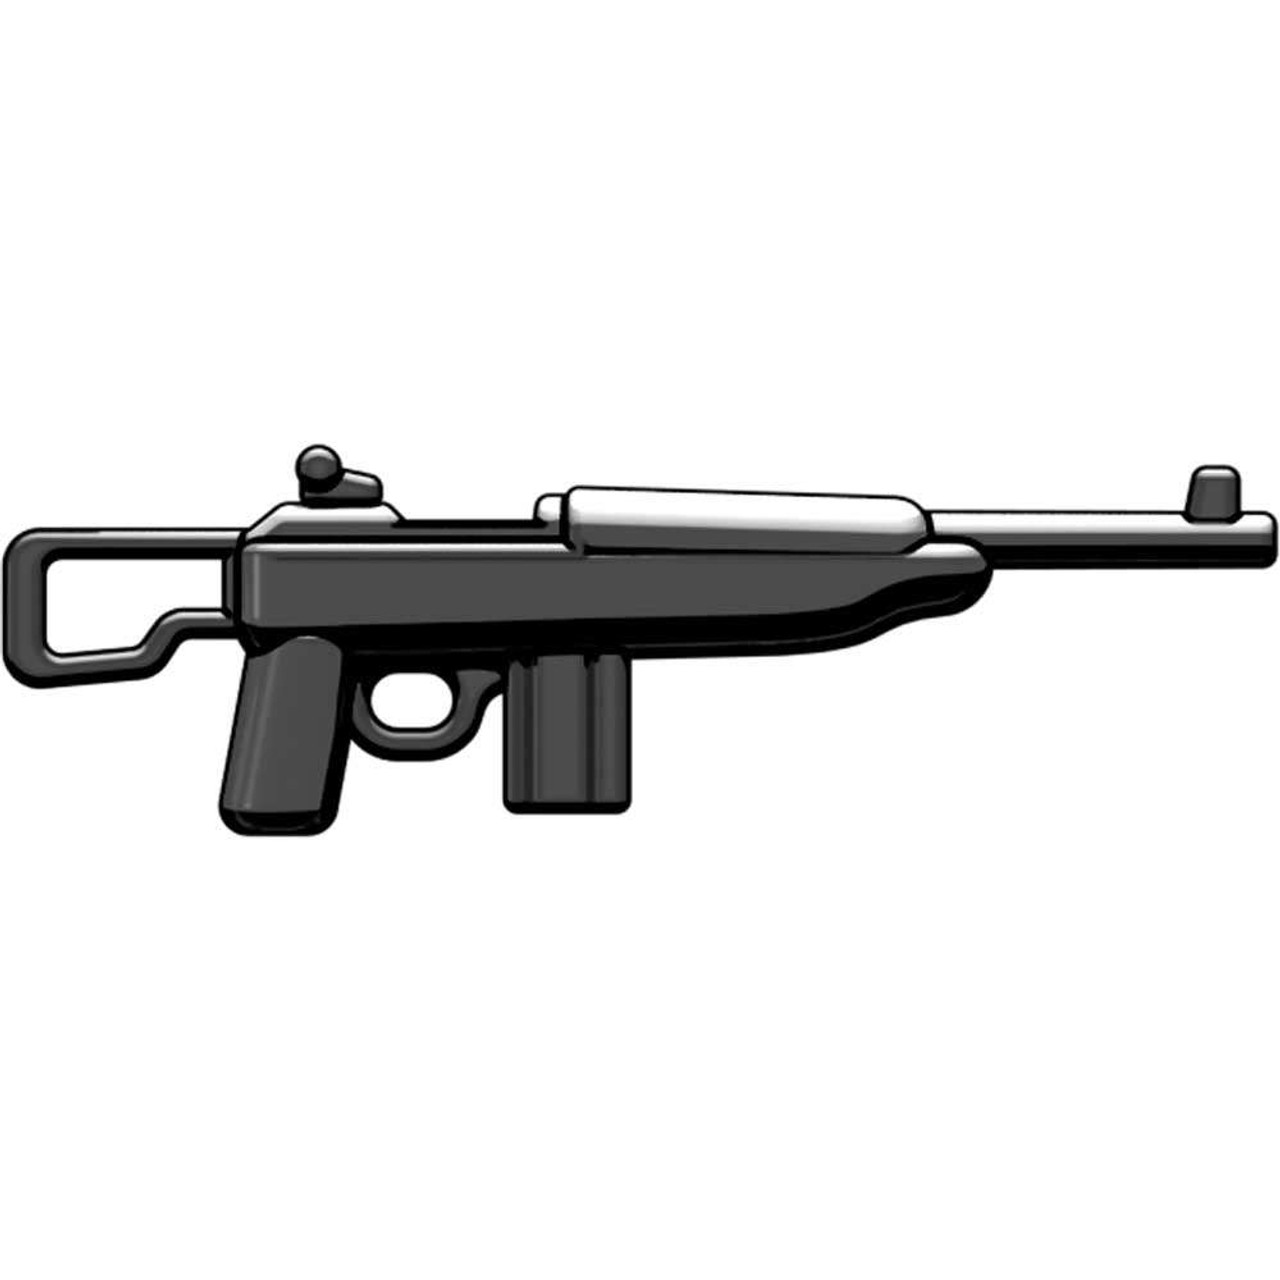 BrickArms Weapons M1 Carbine Para 2.5-Inch [Black]